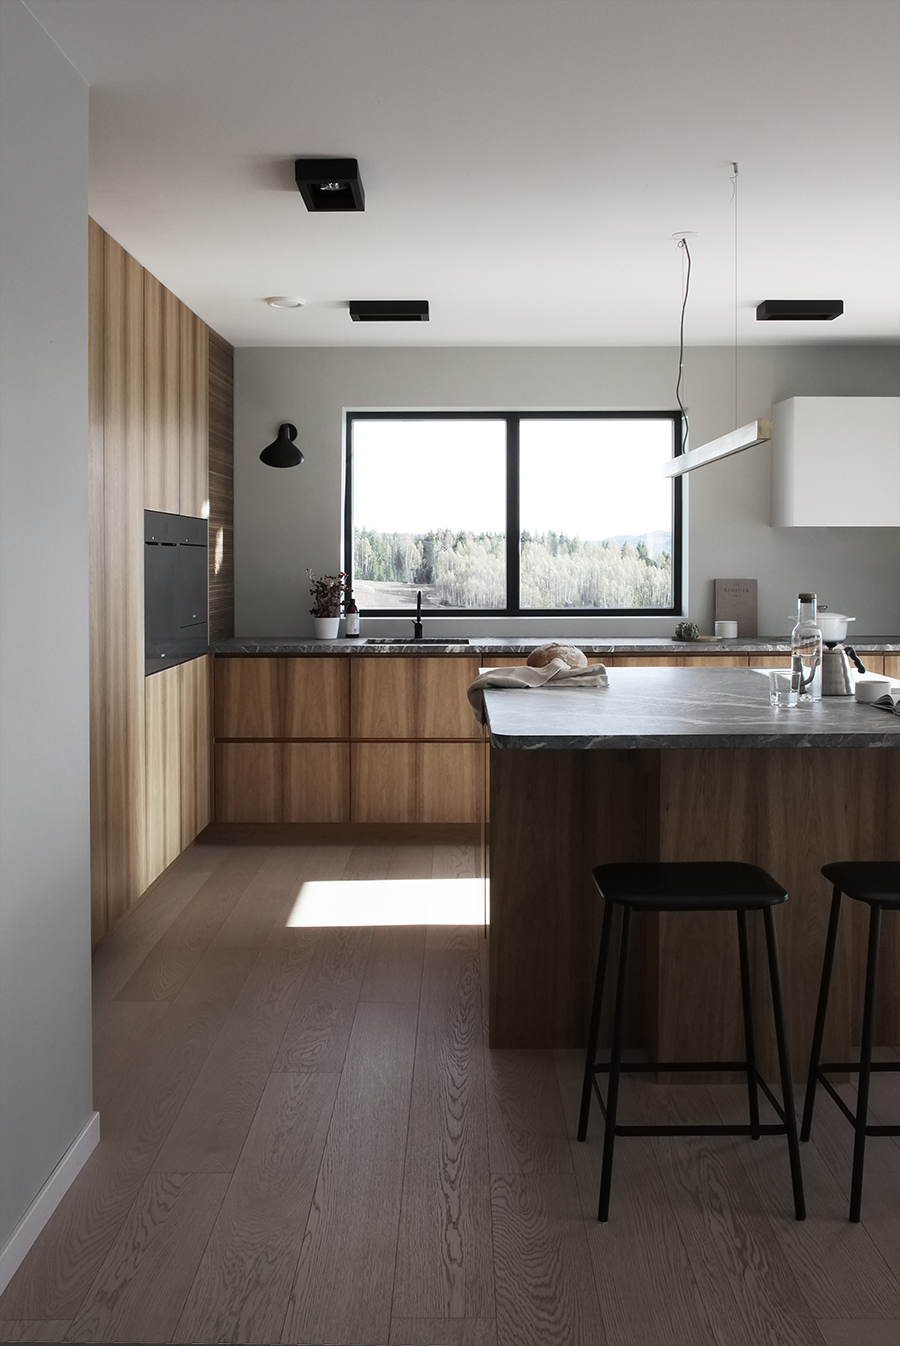 A MODERN FAMILY KITCHEN IN THE COUNTRYSIDE